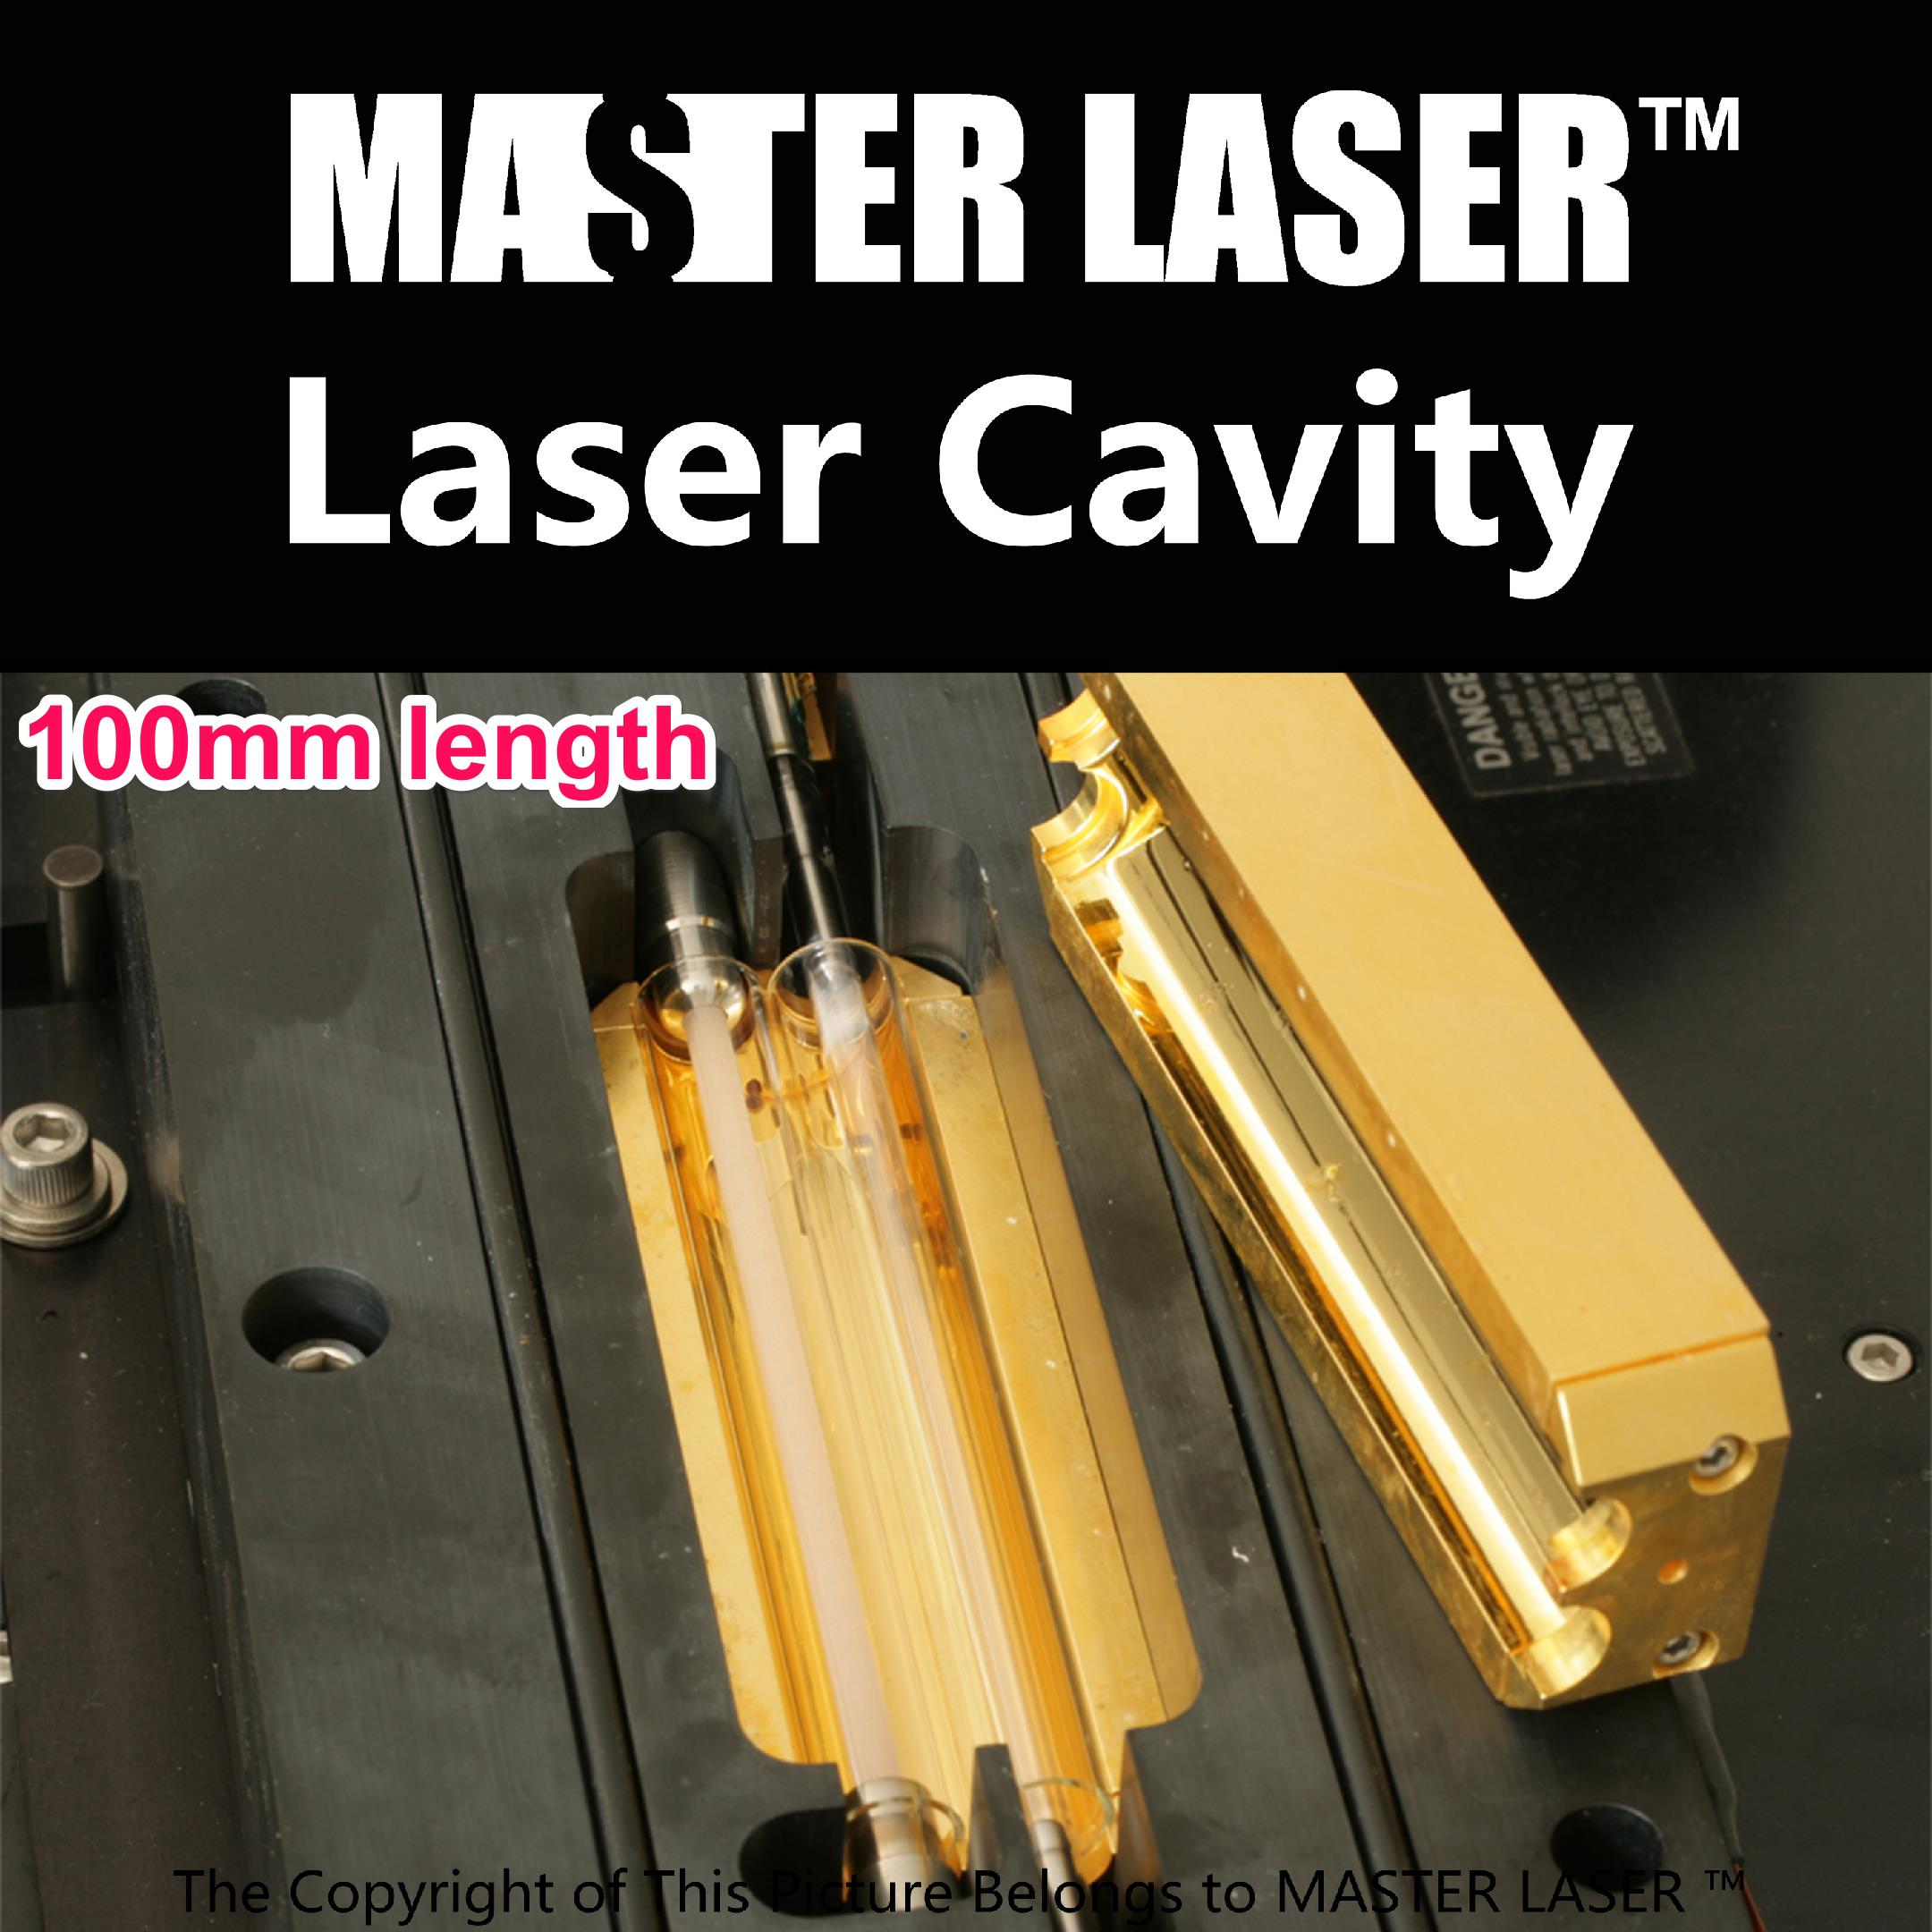 Replace of YAG Laser Tag Equipment Laser Welding Machine Yag Marking Machine Laser Cavity Golden Chamber Body Length 100mm free shipping 1064nm laser protective glasses for workplace of nd yag laser marking and cutting machine supreme quality